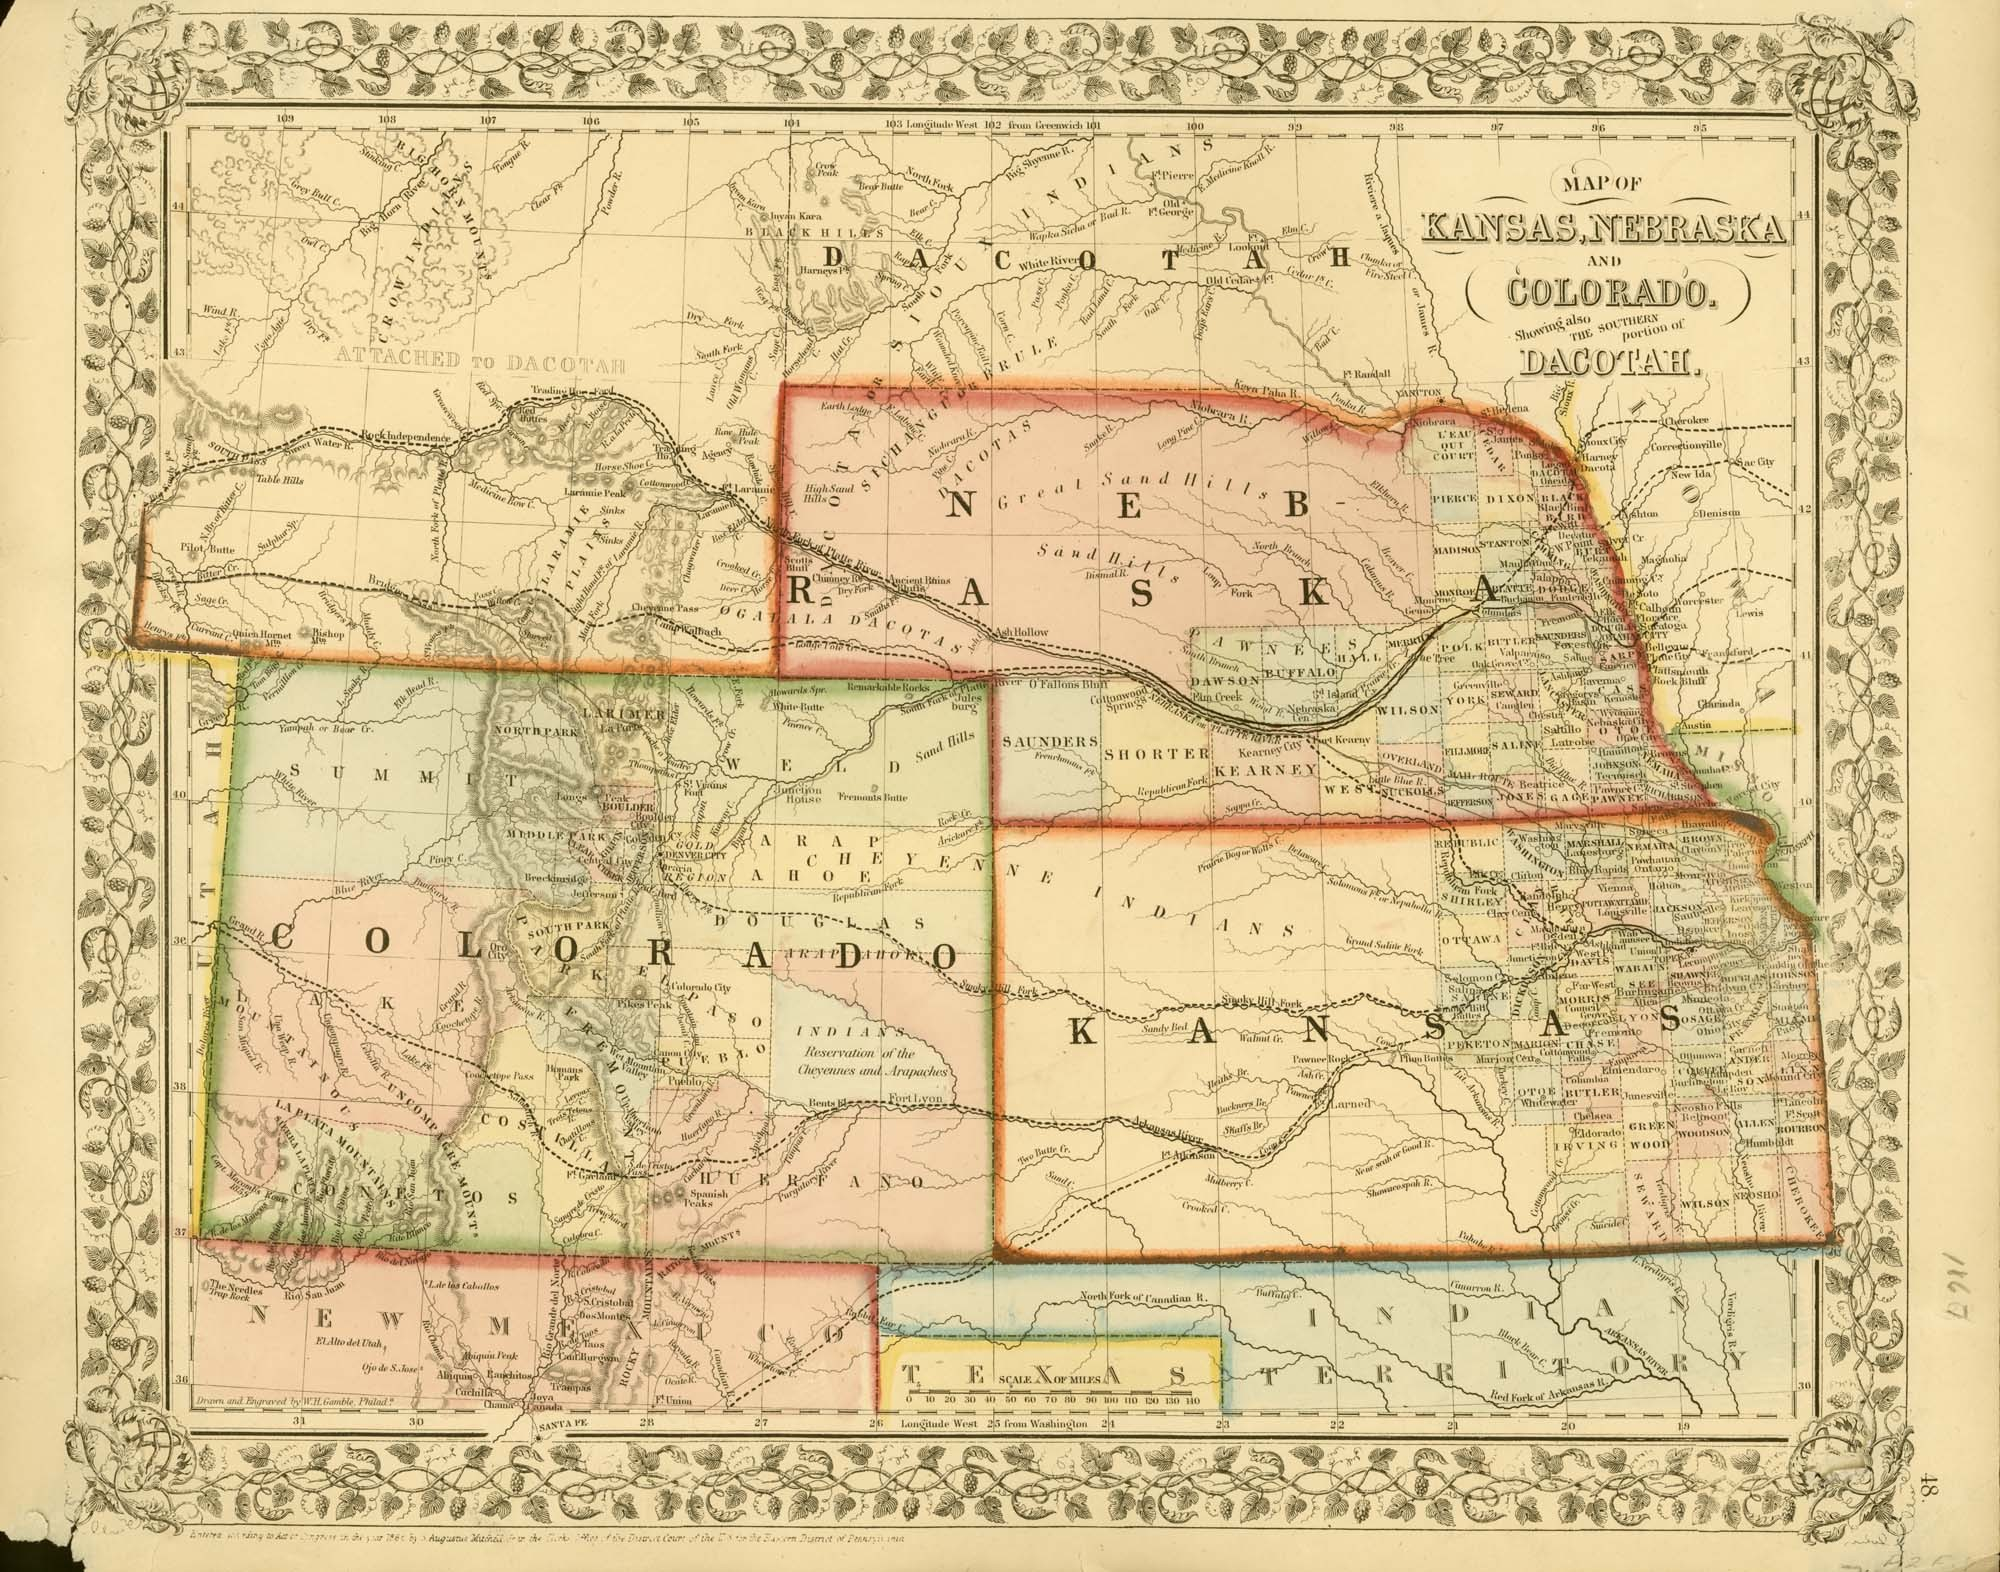 Description: Map of Kansas, Nebraska and Colorado - Page